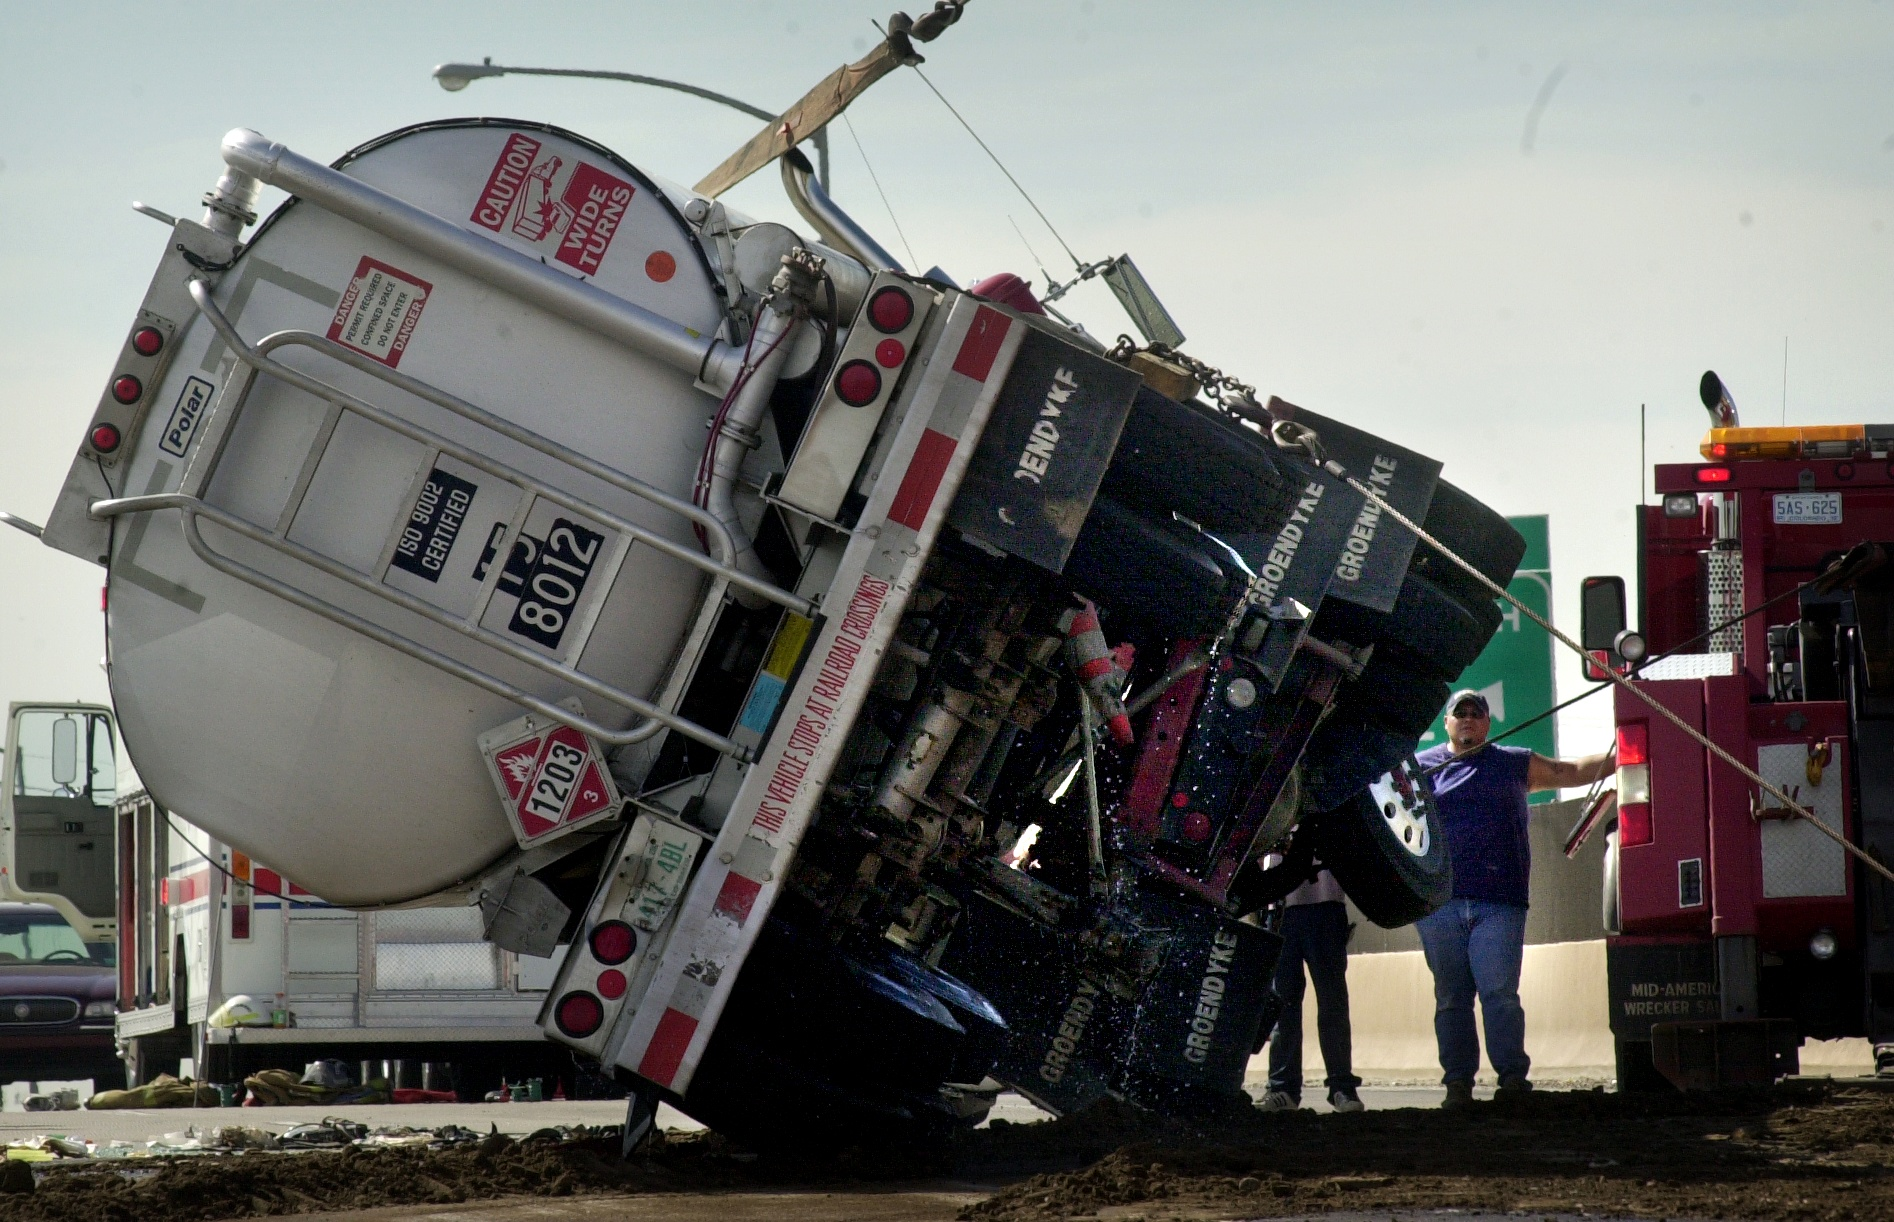 At 6am this tanker truck overturned on Interstate 270 east after using the north bound ramp from Vasquez Blvd. According to State Trooper Mark Bills The tanker owned by Groendyke Transport Inc (Enid / Okla) carried 8500 gallons of unleaded fuel and spille